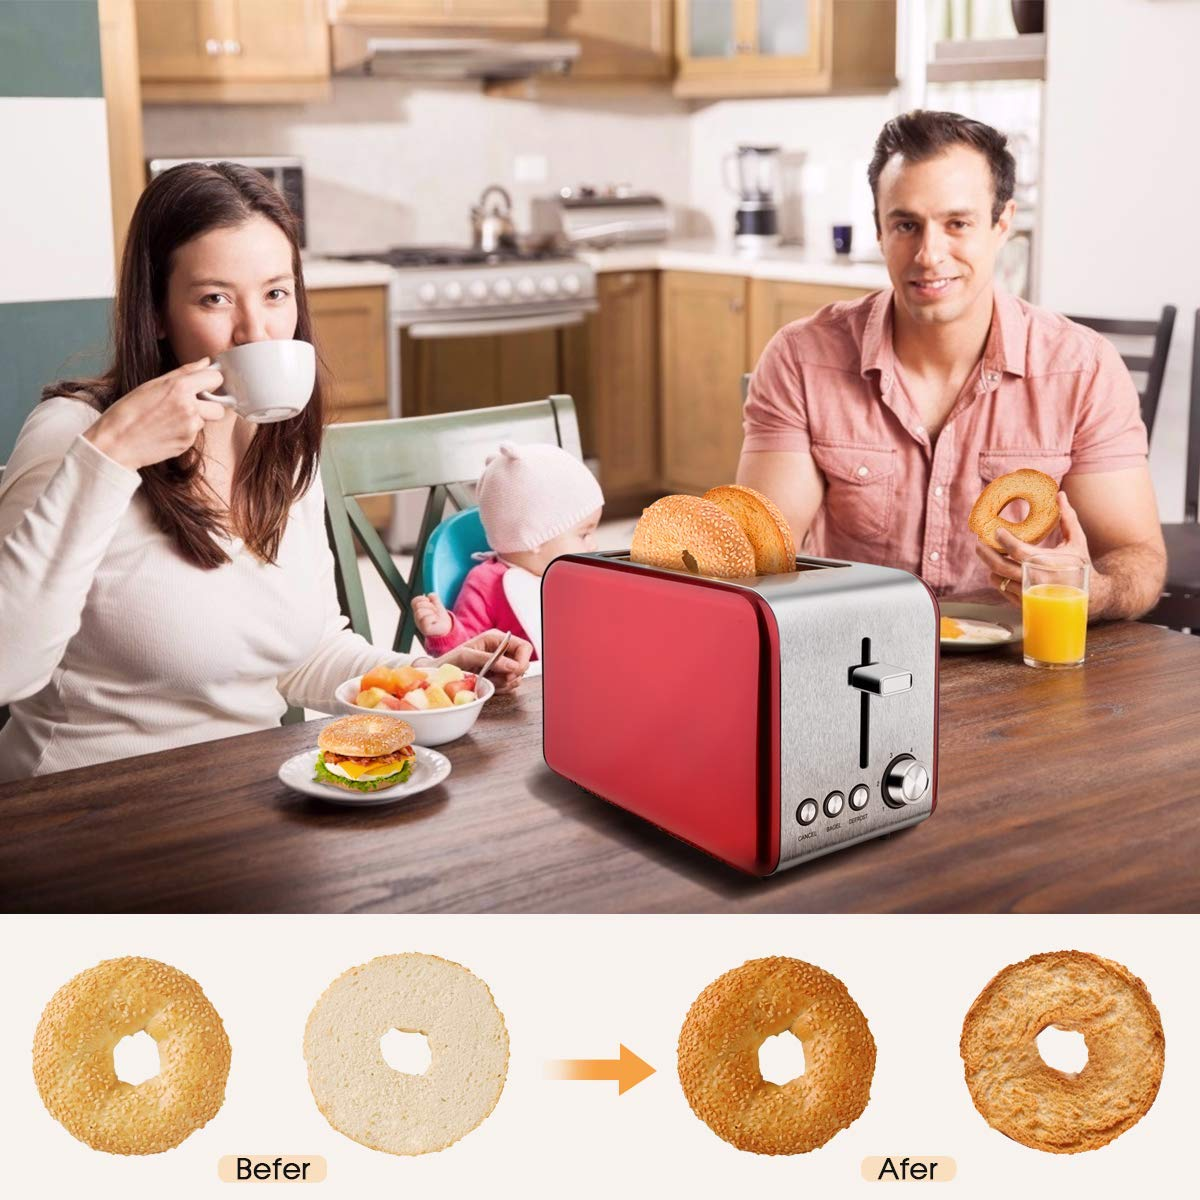 2 Slice Toaster, MKG Stainless Steel Bagel Toaster with Extra Wide Slots, 6 Shade Settings, Bagel/Defrost/Cancel Function, Removable Crumb Tray, High Lift Lever, Red